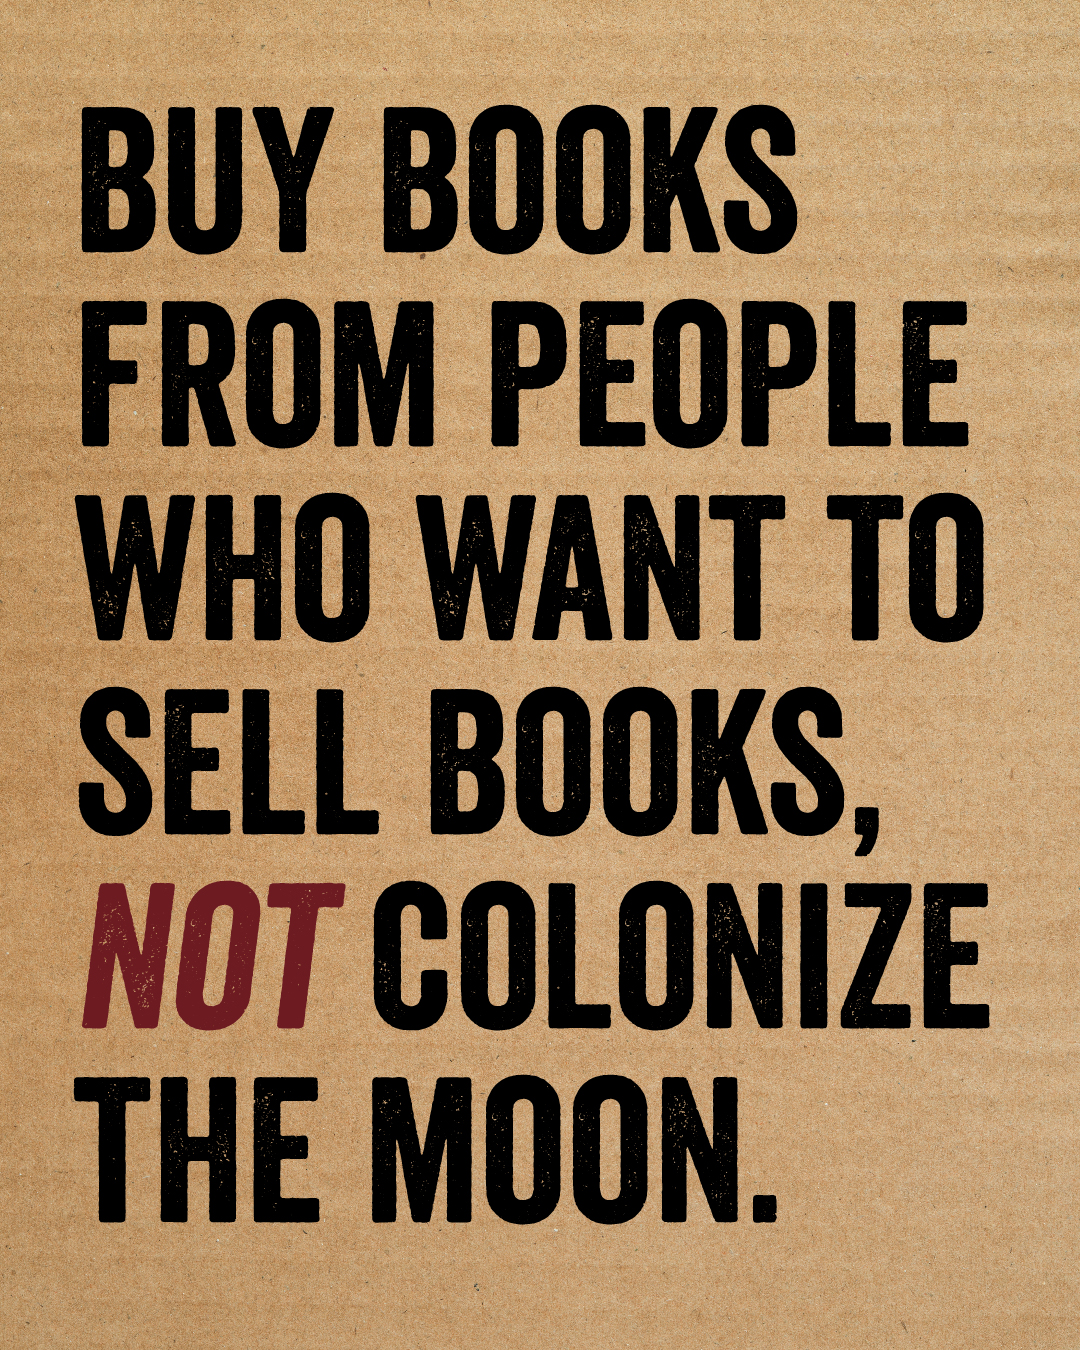 Buy books from people who want to sell books, not colonize the moon!